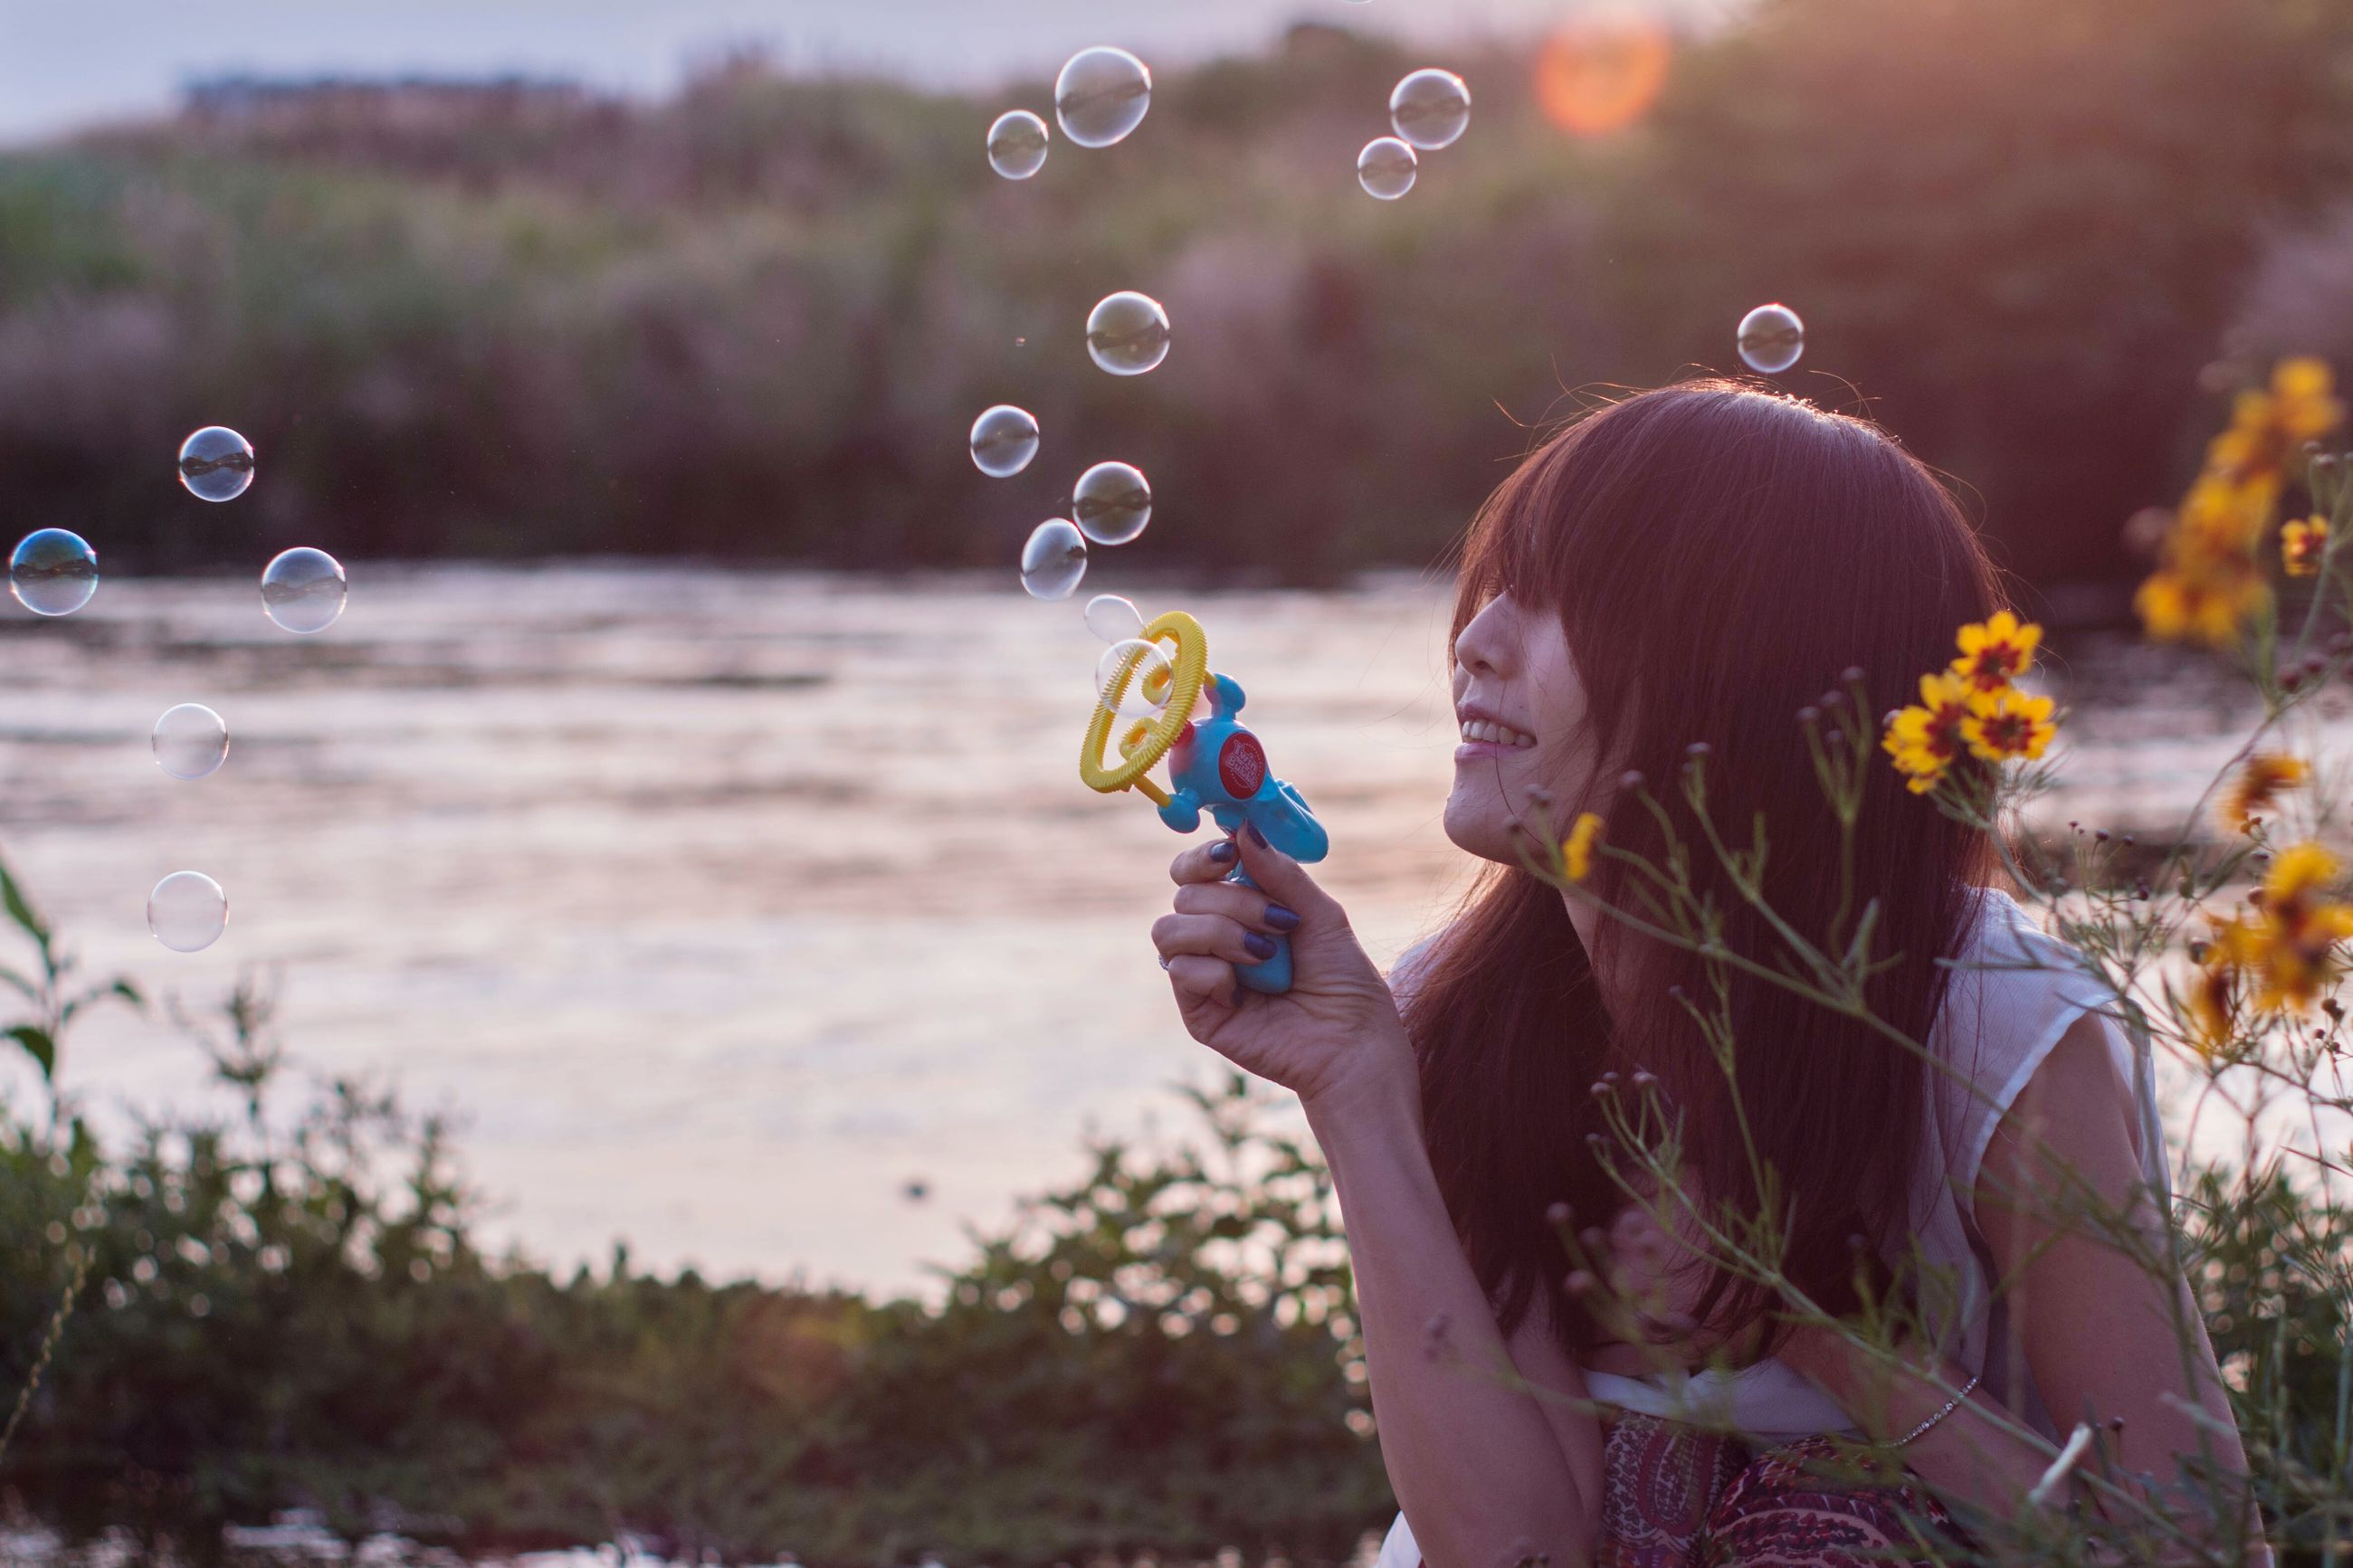 bubble wand, bubble, leisure activity, blowing, one person, focus on foreground, fragility, holding, flower, outdoors, real people, mid-air, casual clothing, day, nature, lifestyles, standing, childhood, young adult, young women, tree, people